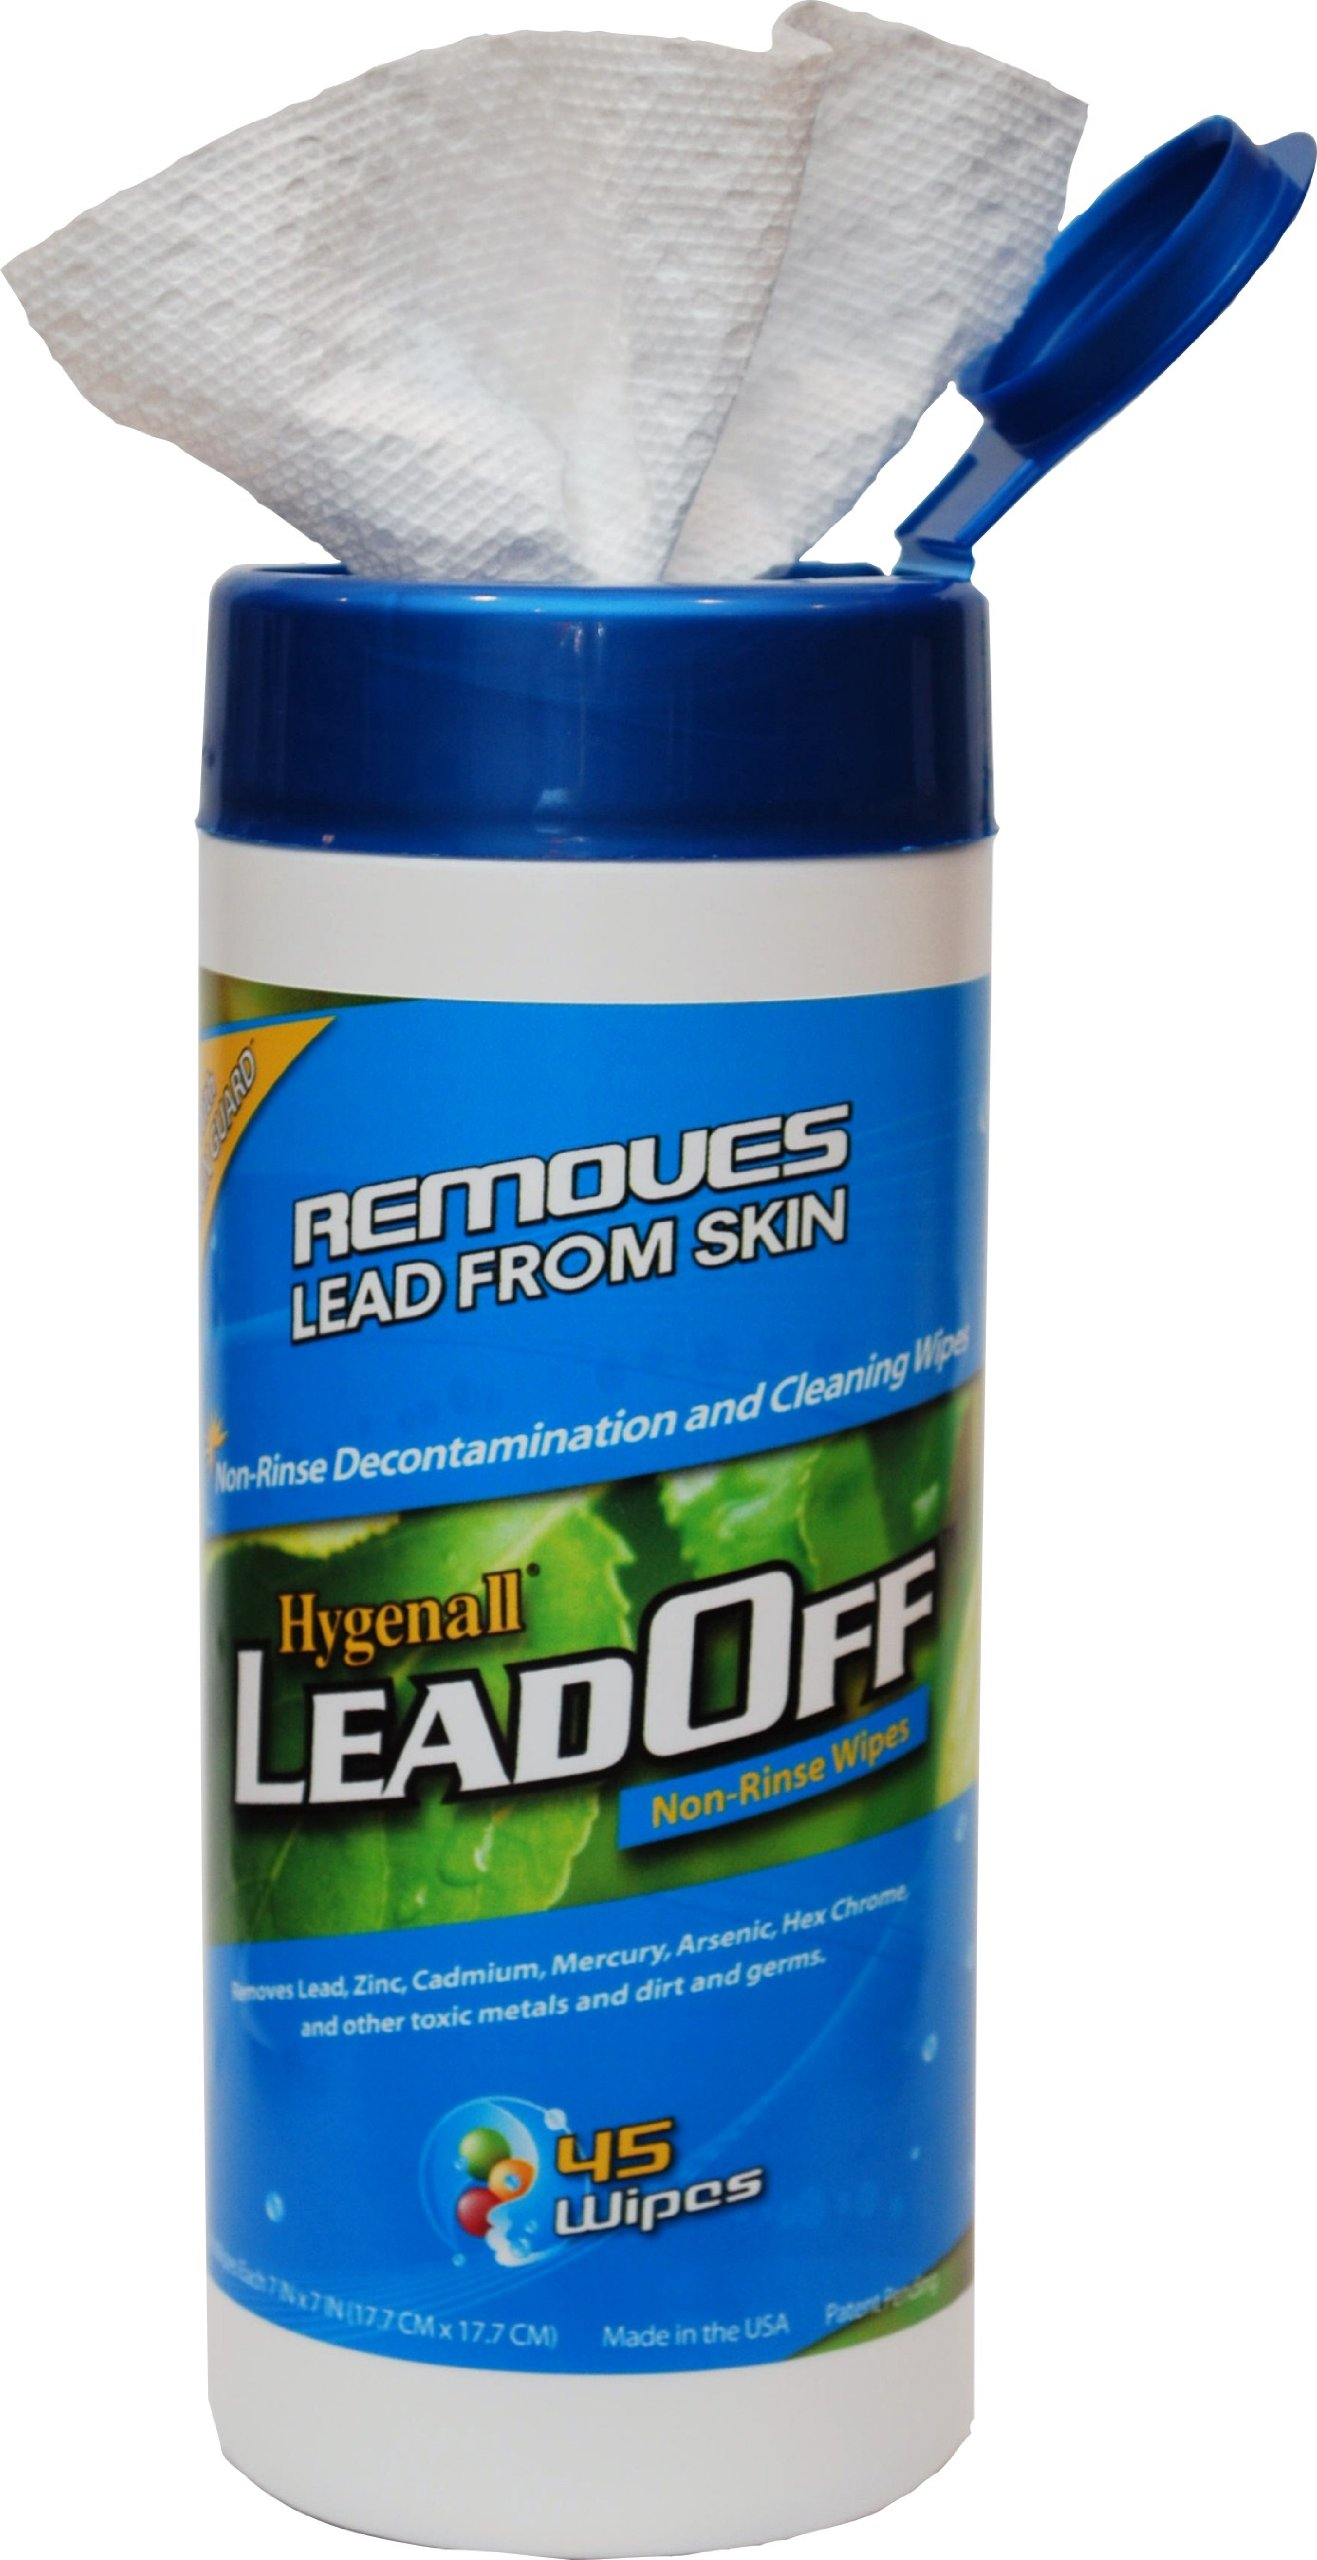 Hygenall LeadOff Disposable Cleaning and Decon Wipes - 45 Wipe Canister 45NRCN by Hygenall